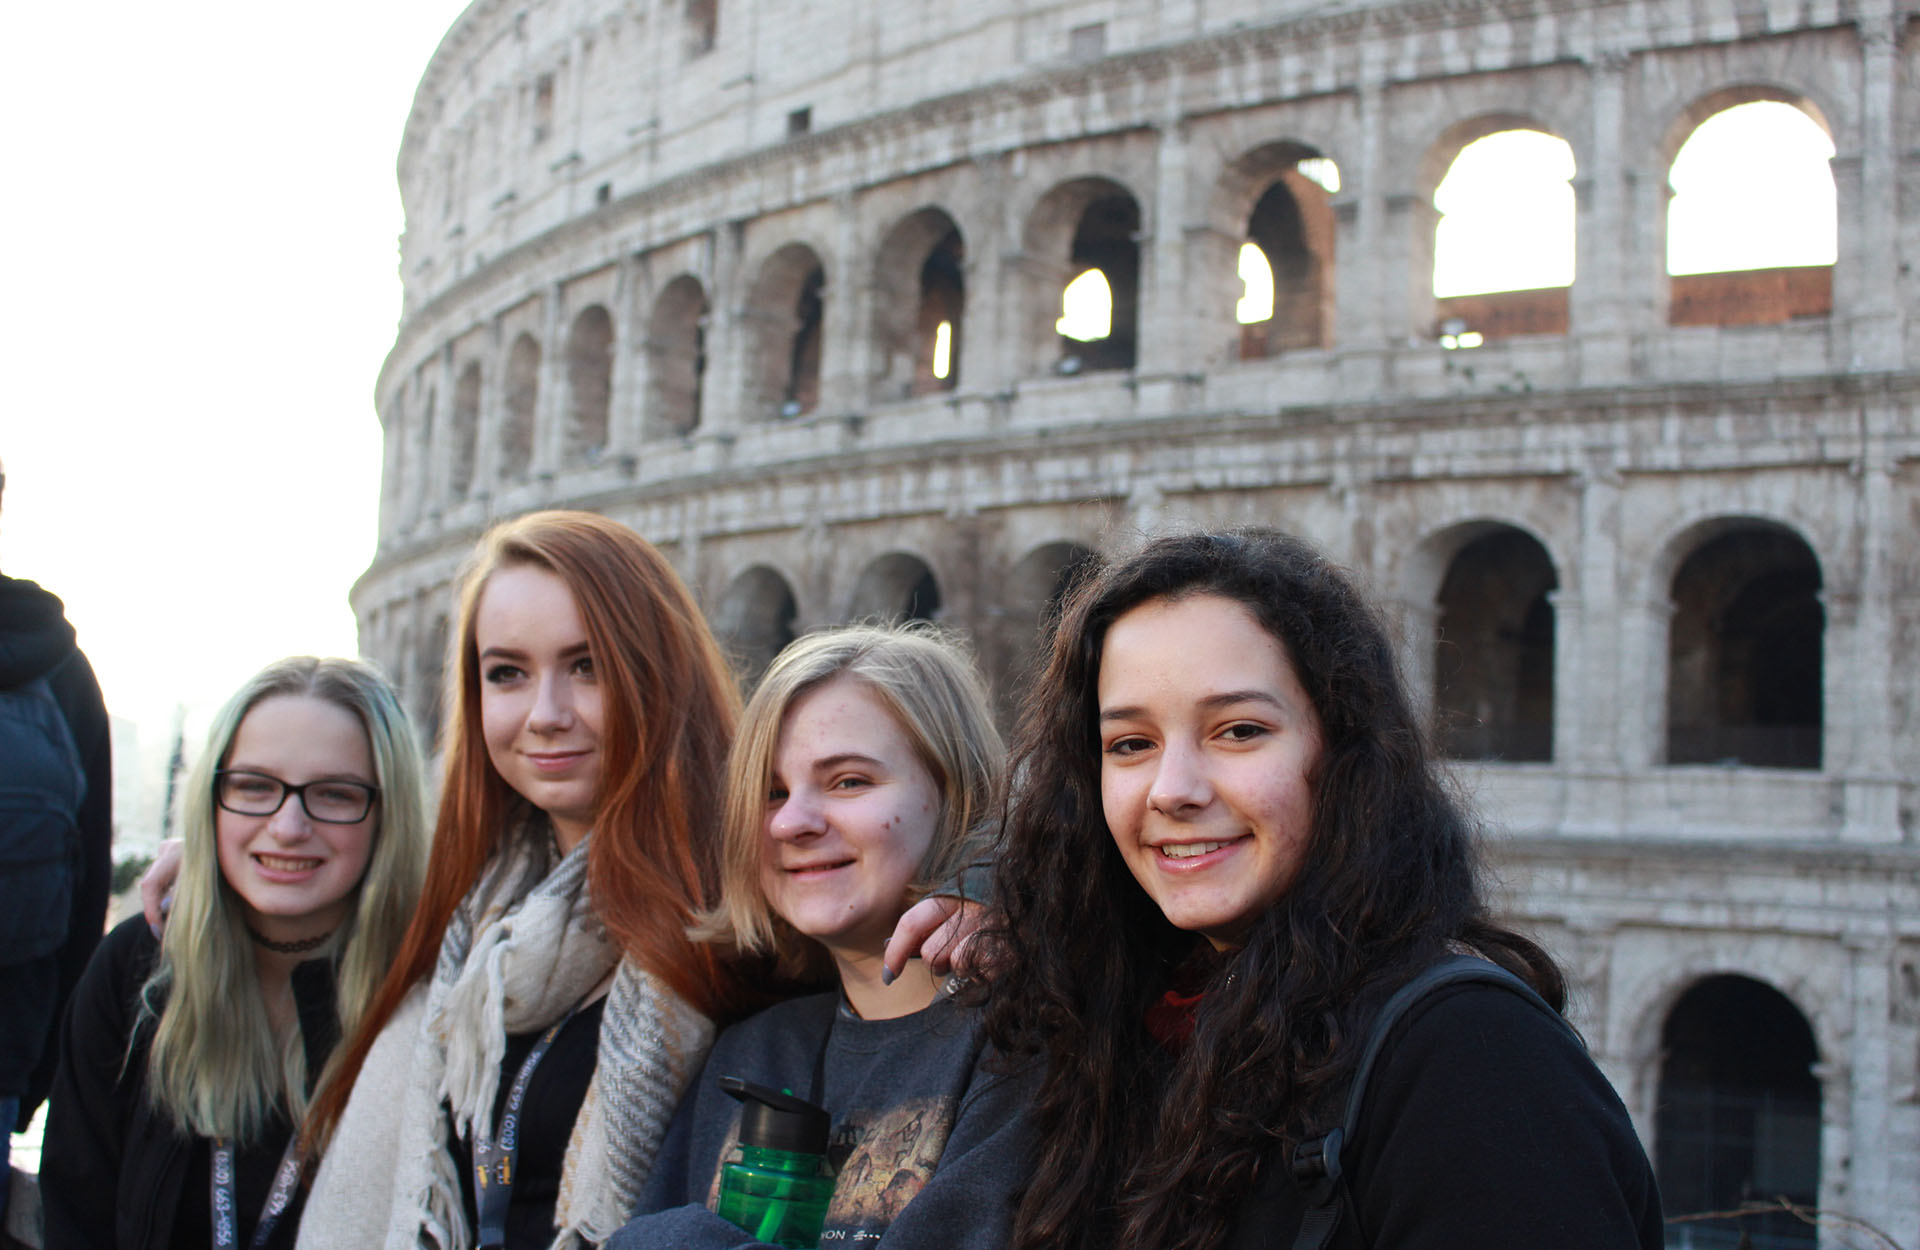 Young girls in front of the Colosseum in Rome